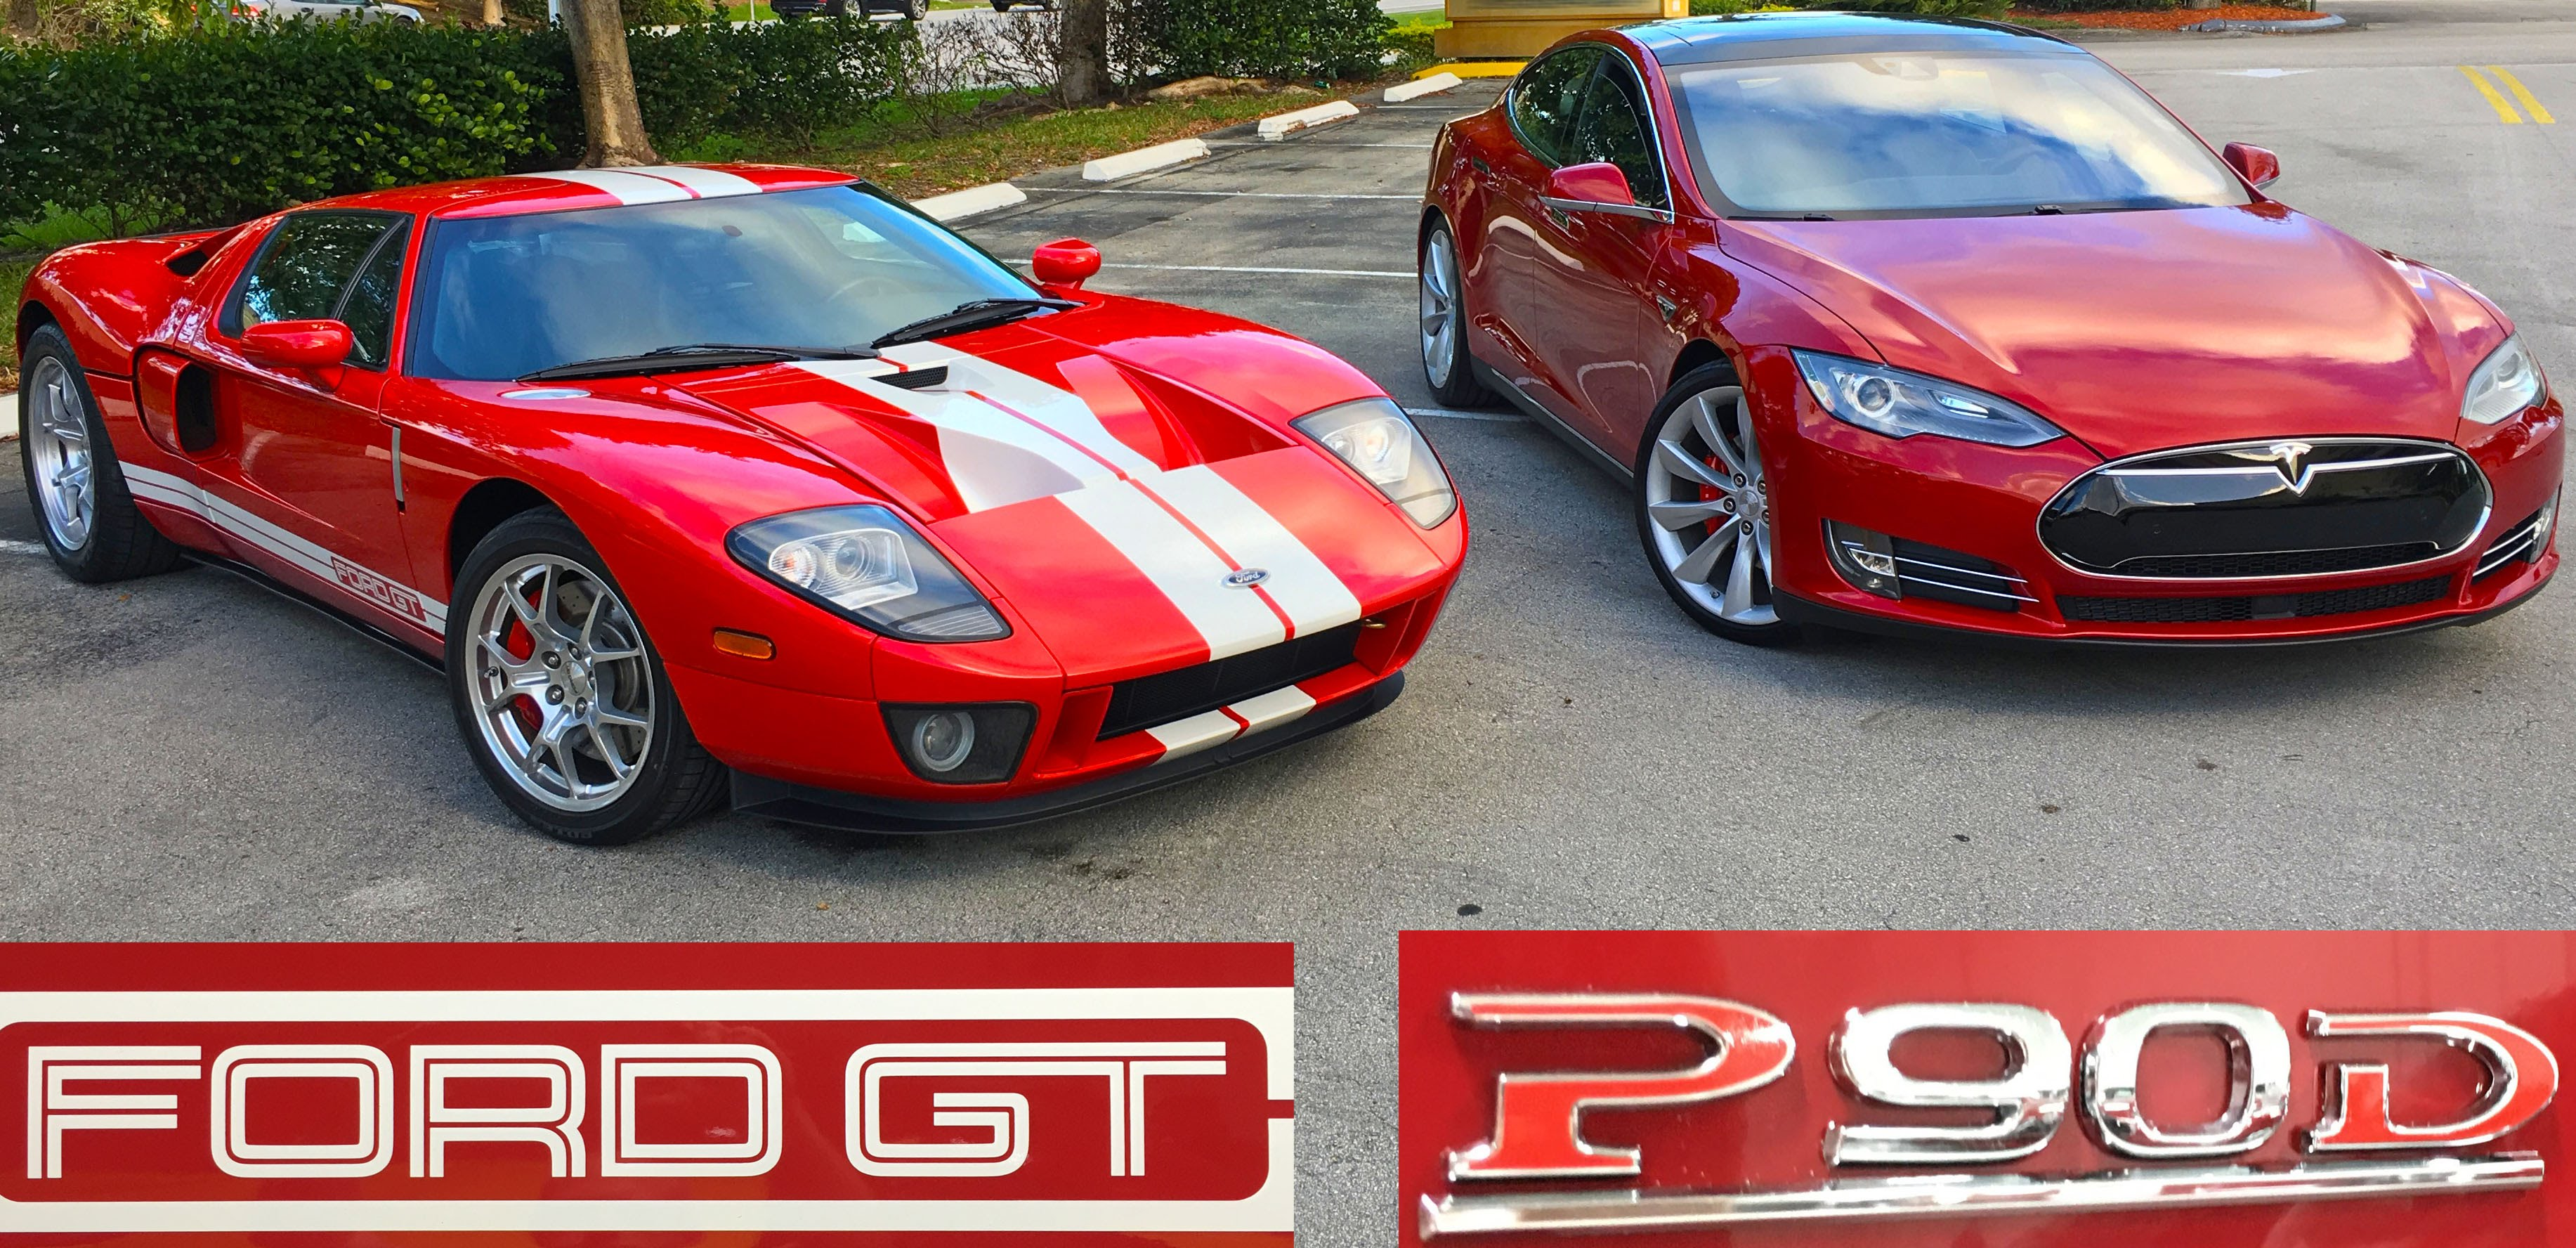 Model S Pd Demolished Ford Gt At The Start But Eventually The Ford Had Its Revenge